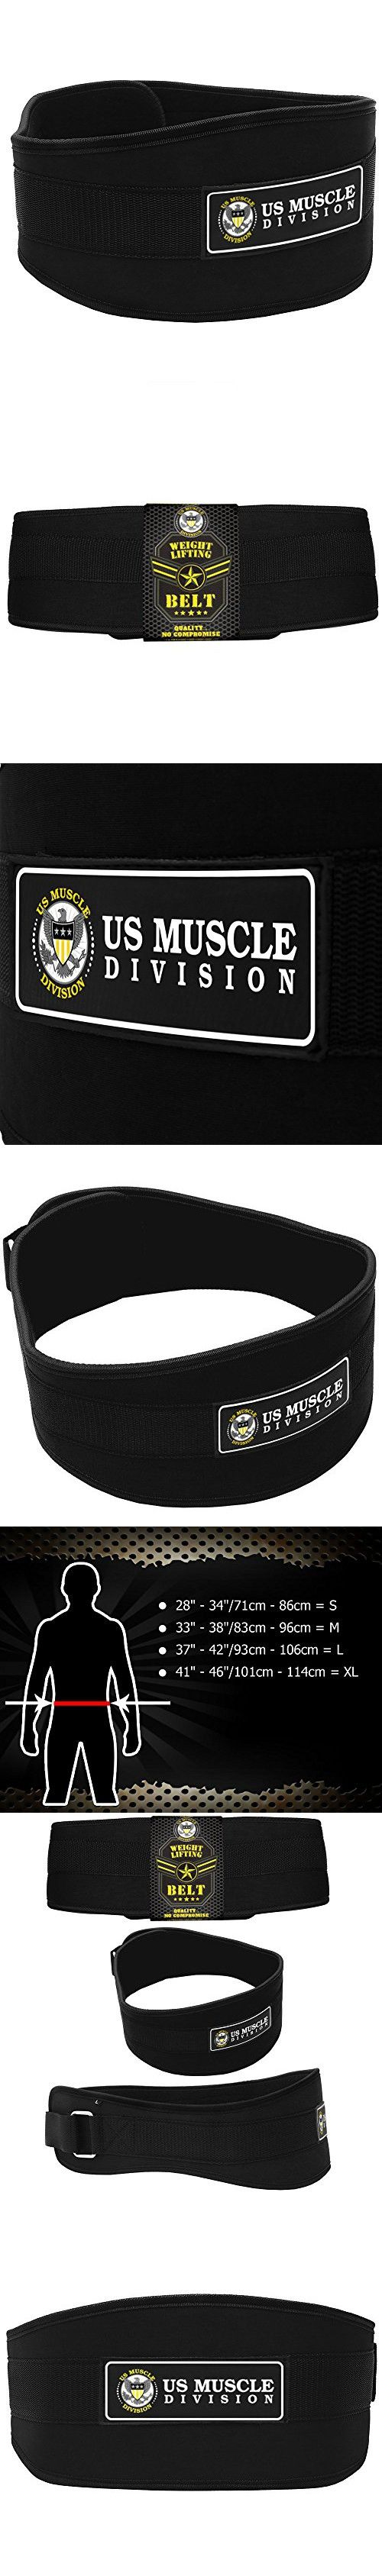 """Weight Lifting Belt - US Muscle Division Back Support Belt + Easy Open Velcro Hook And Loop Fastener - Double Stitched Weight Belt Featuring Soft Feel 6"""" Wide Padded Neoprene"""